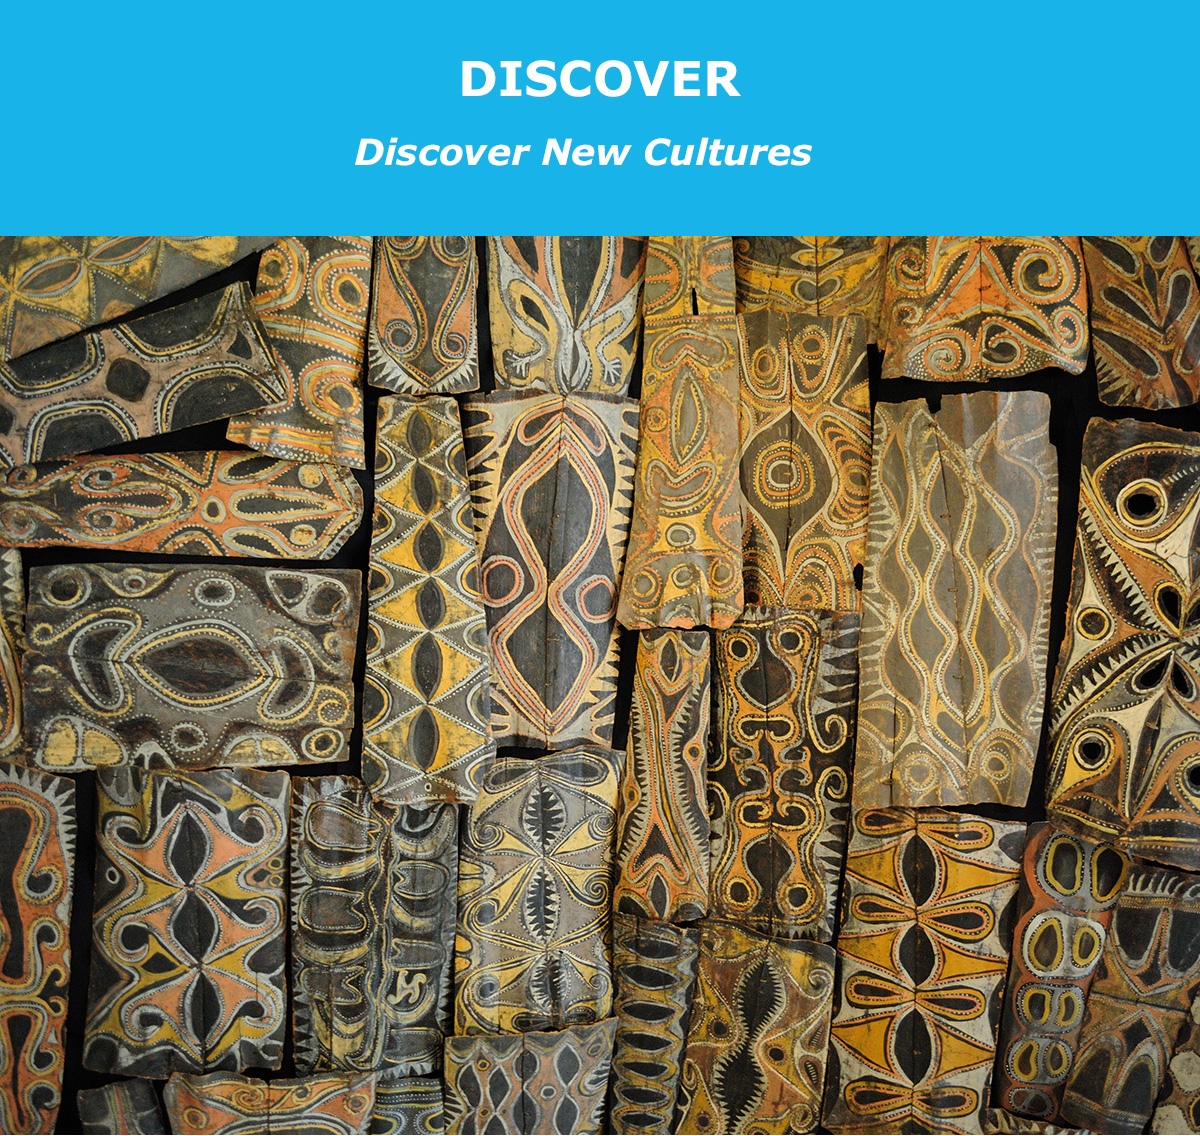 Discover New Cultures